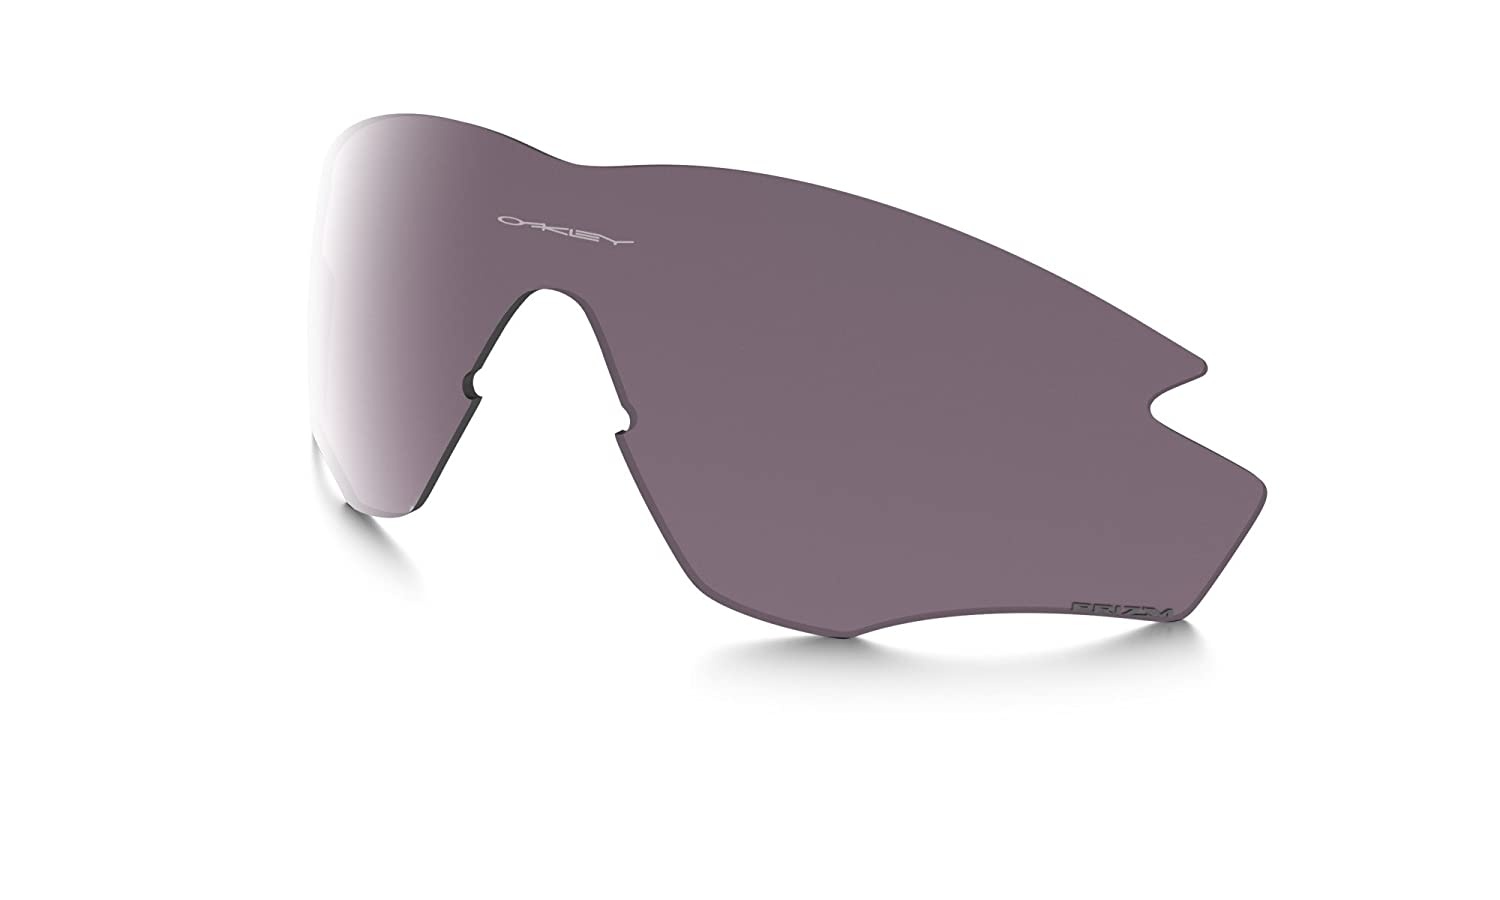 ae144199466 Amazon.com  Oakley M2 Frame Sunglass Lenses Prizm Golf  Oakley Lenses   Clothing